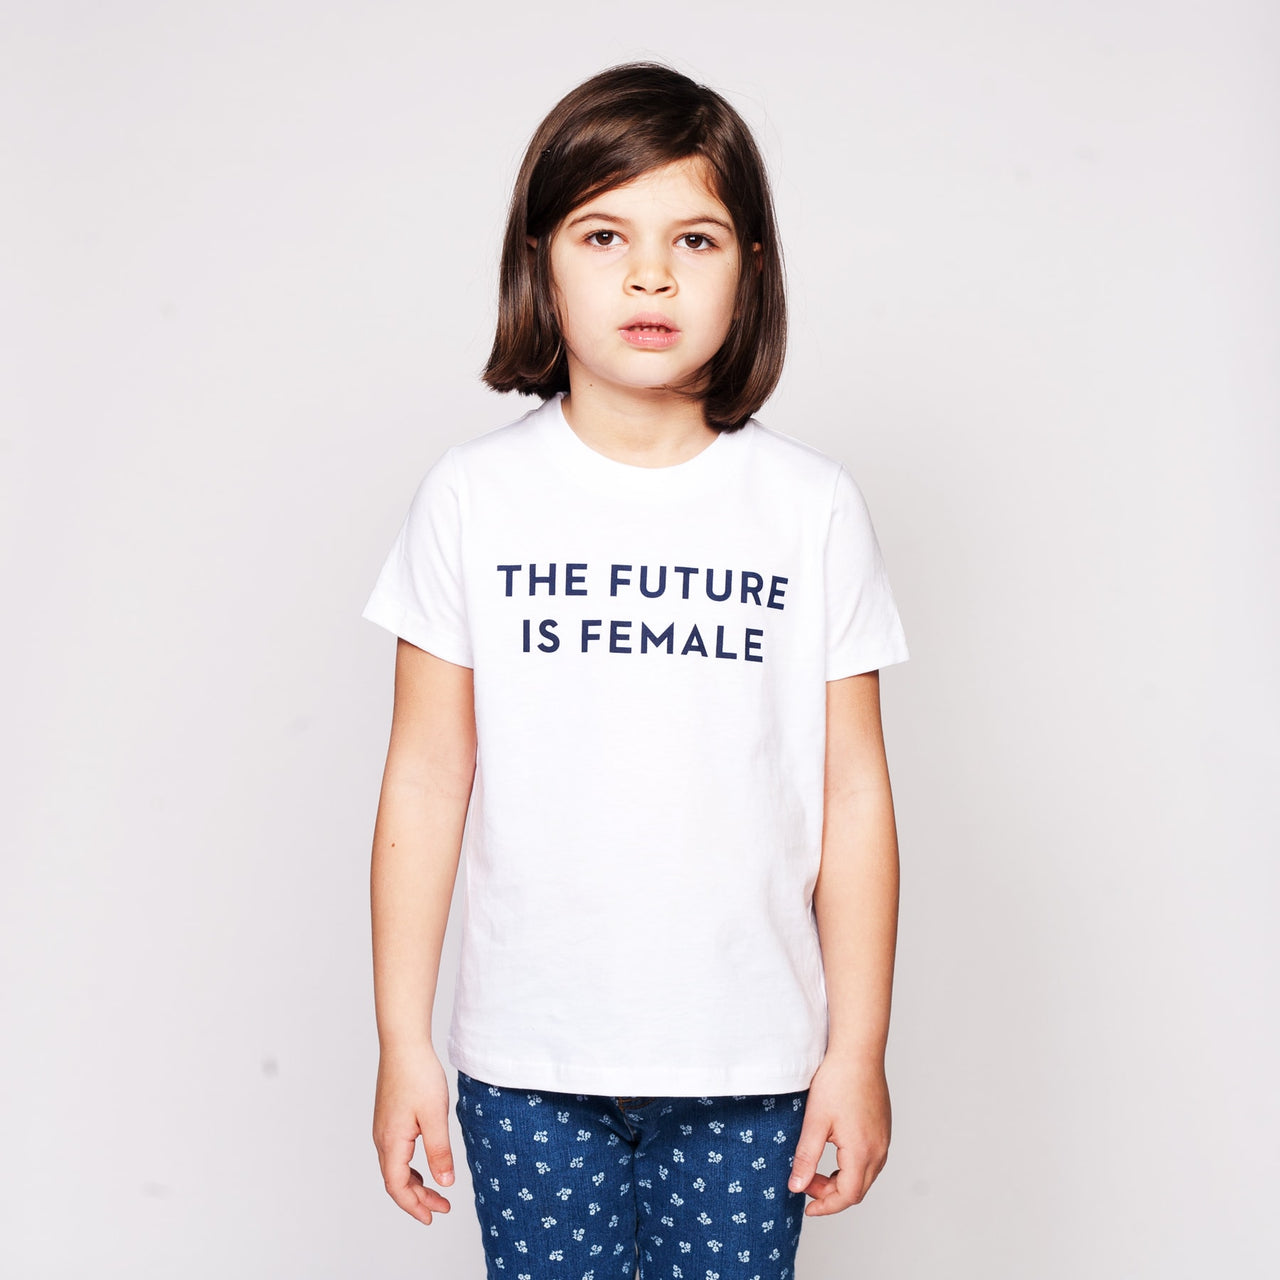 The Future is Female Kids Tee